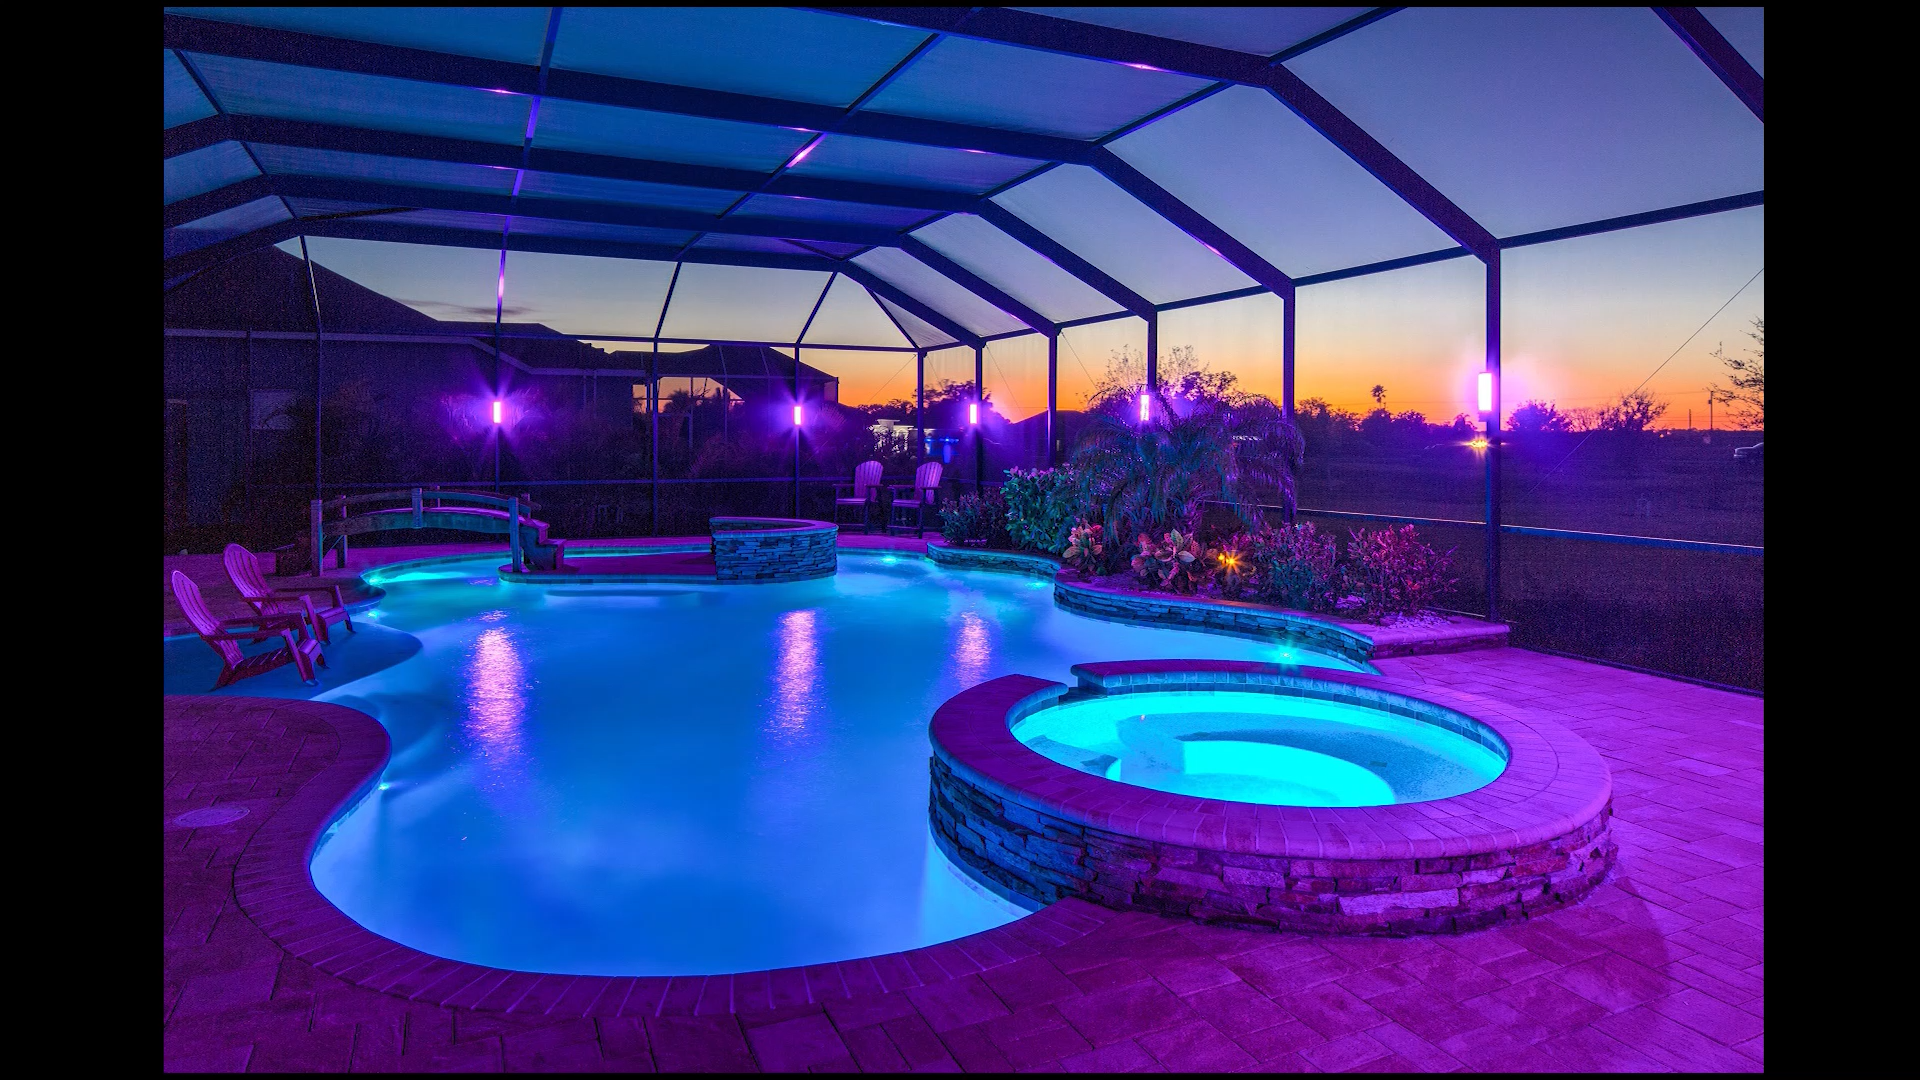 Elegante Led Lanai Beleuchtung In 2020 Pool Enclosure Lighting Lanai Lighting Florida Pool